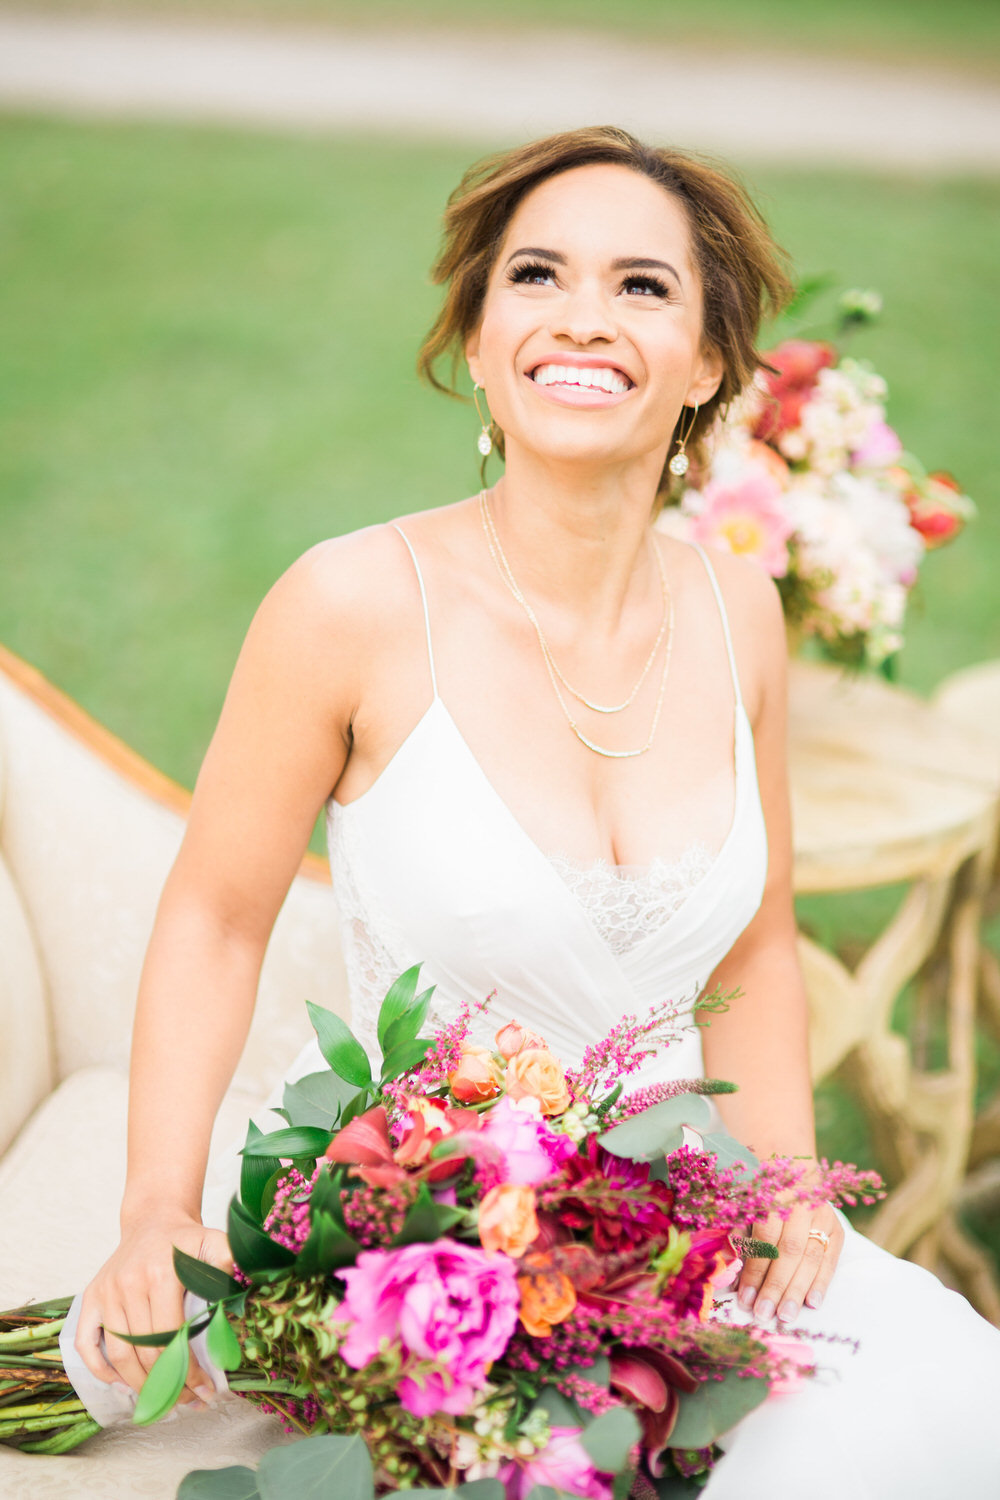 bride smiling while looking up and holding flowers